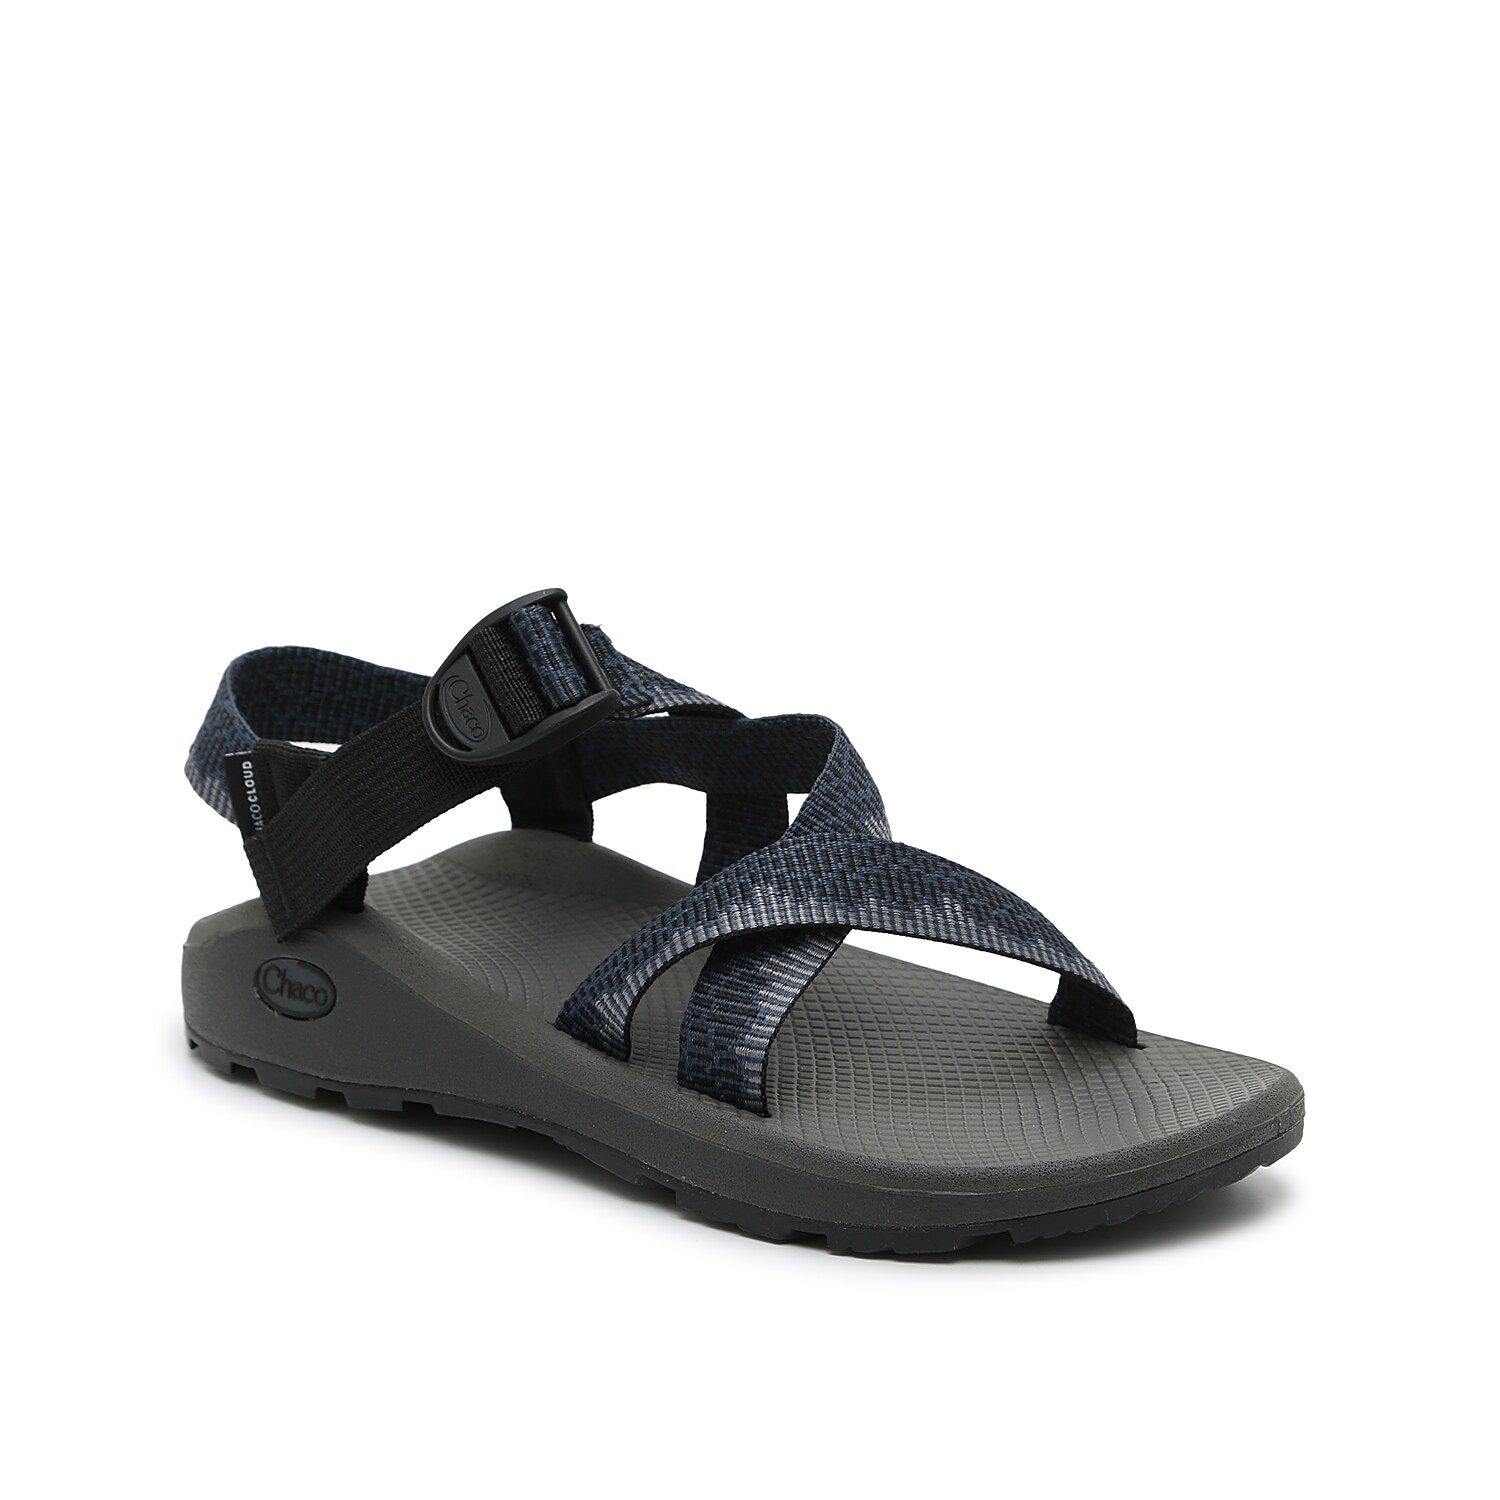 Comfort comes effortlessly with the Zcloud sandal from Chaco. This pair features a LUVSEAT™ midsole for unstoppable cushioning and a ChacoGrip™ rubber traction sole for daylong stability.